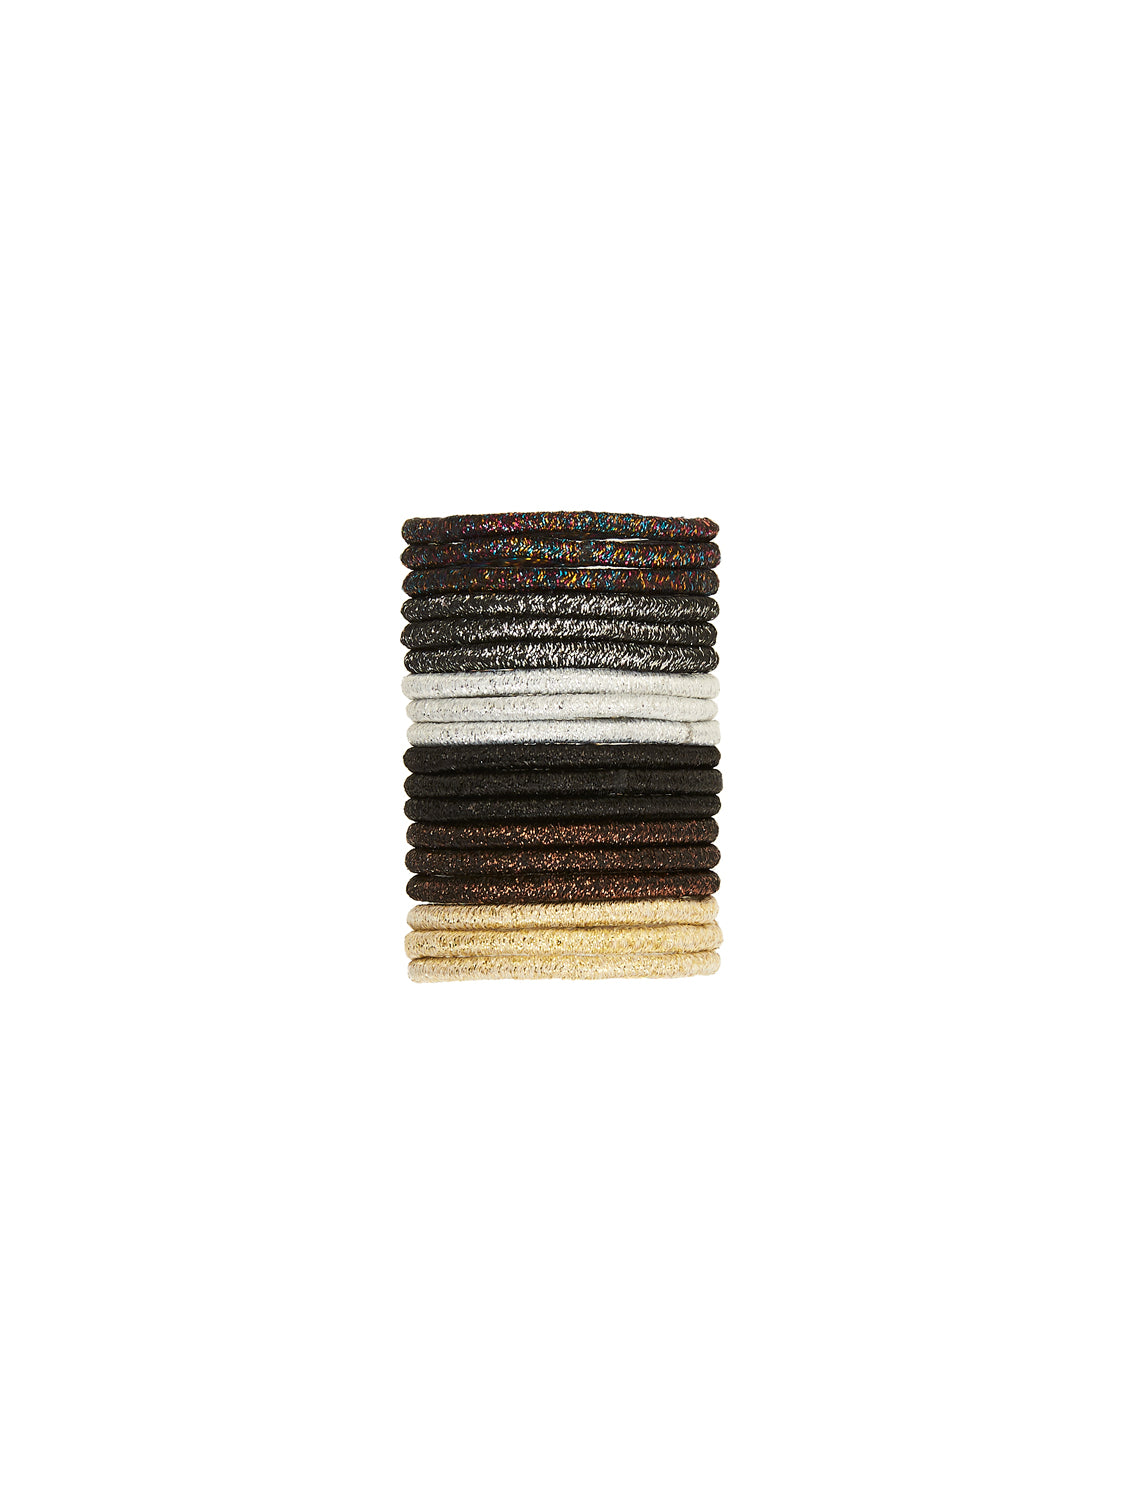 18-Piece Metallic Hair Elastics